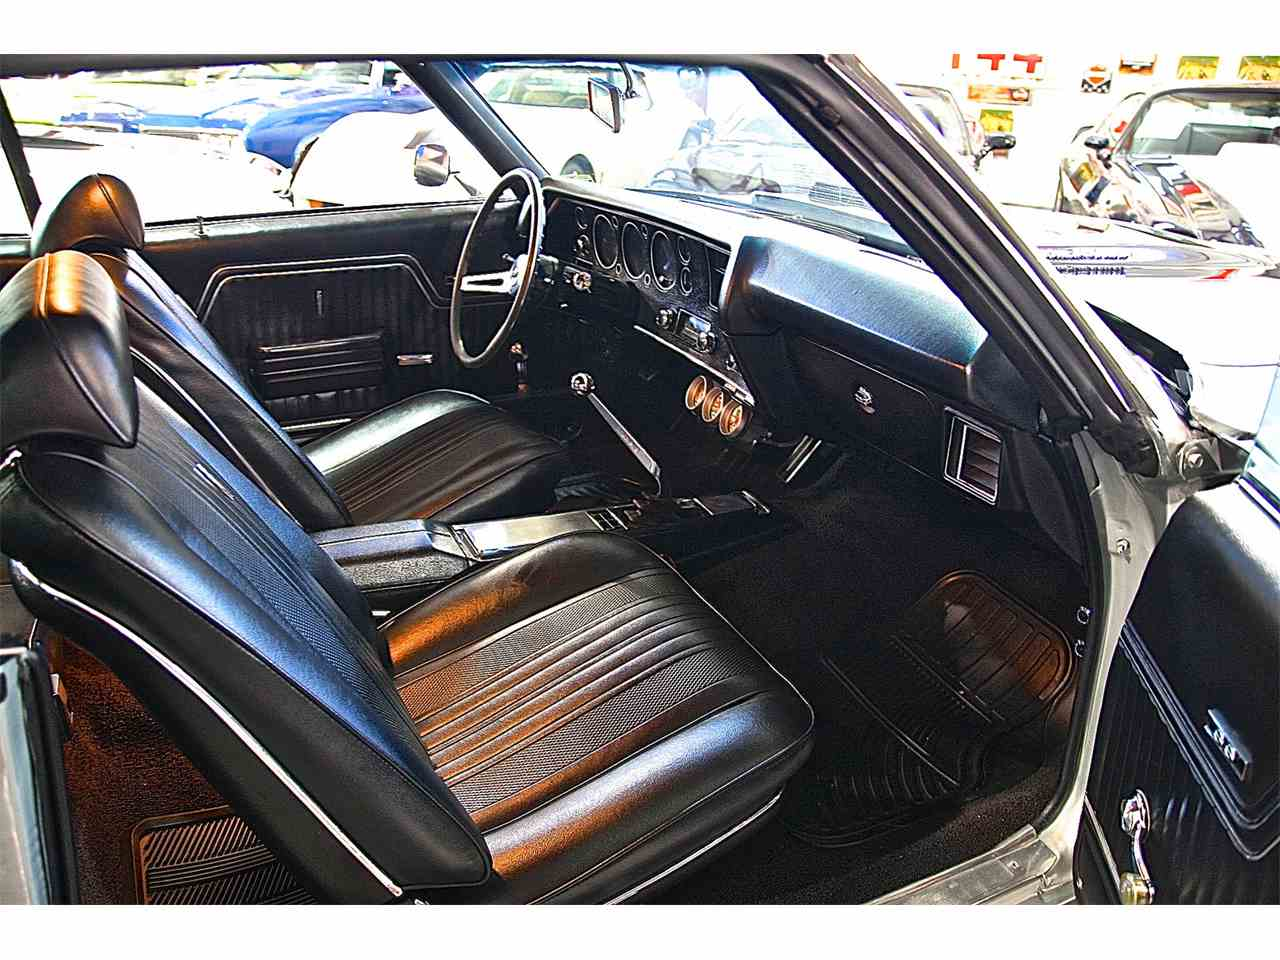 Large Picture of Classic '70 Chevrolet Chevelle SS - $92,000.00 - L41W